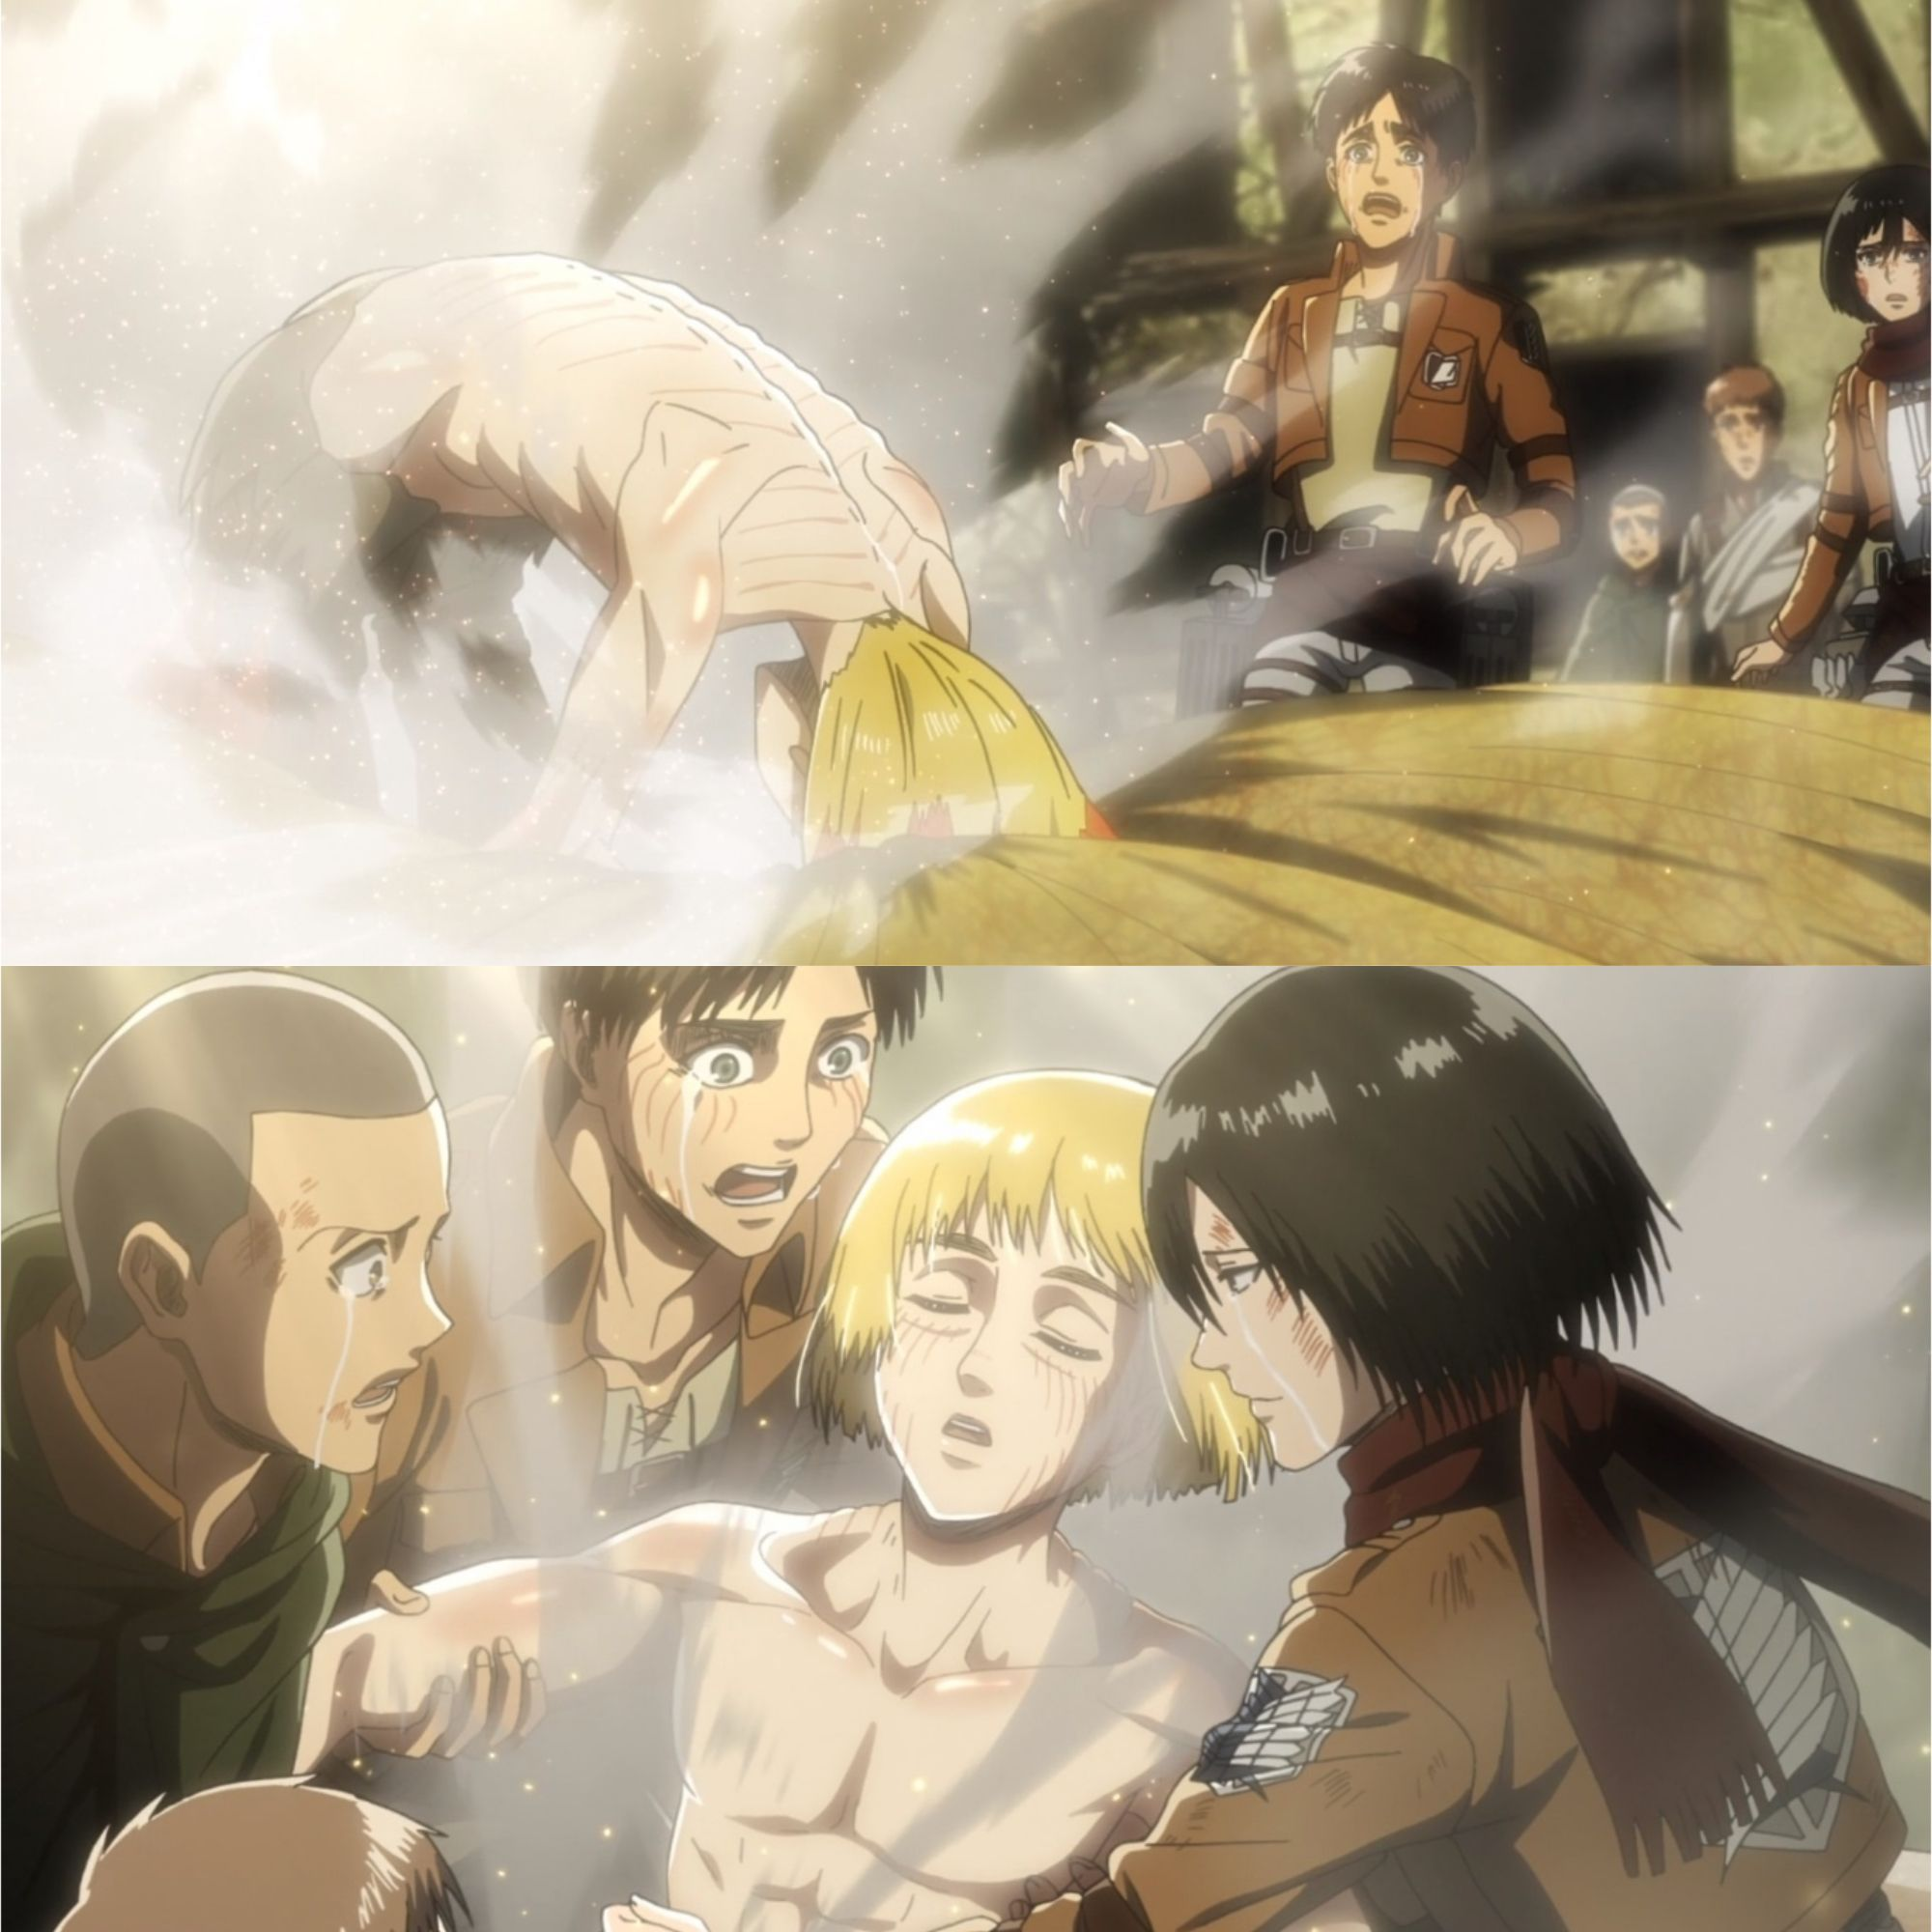 Images Of Attack On Titan Season 3 Episode 18 Release Date